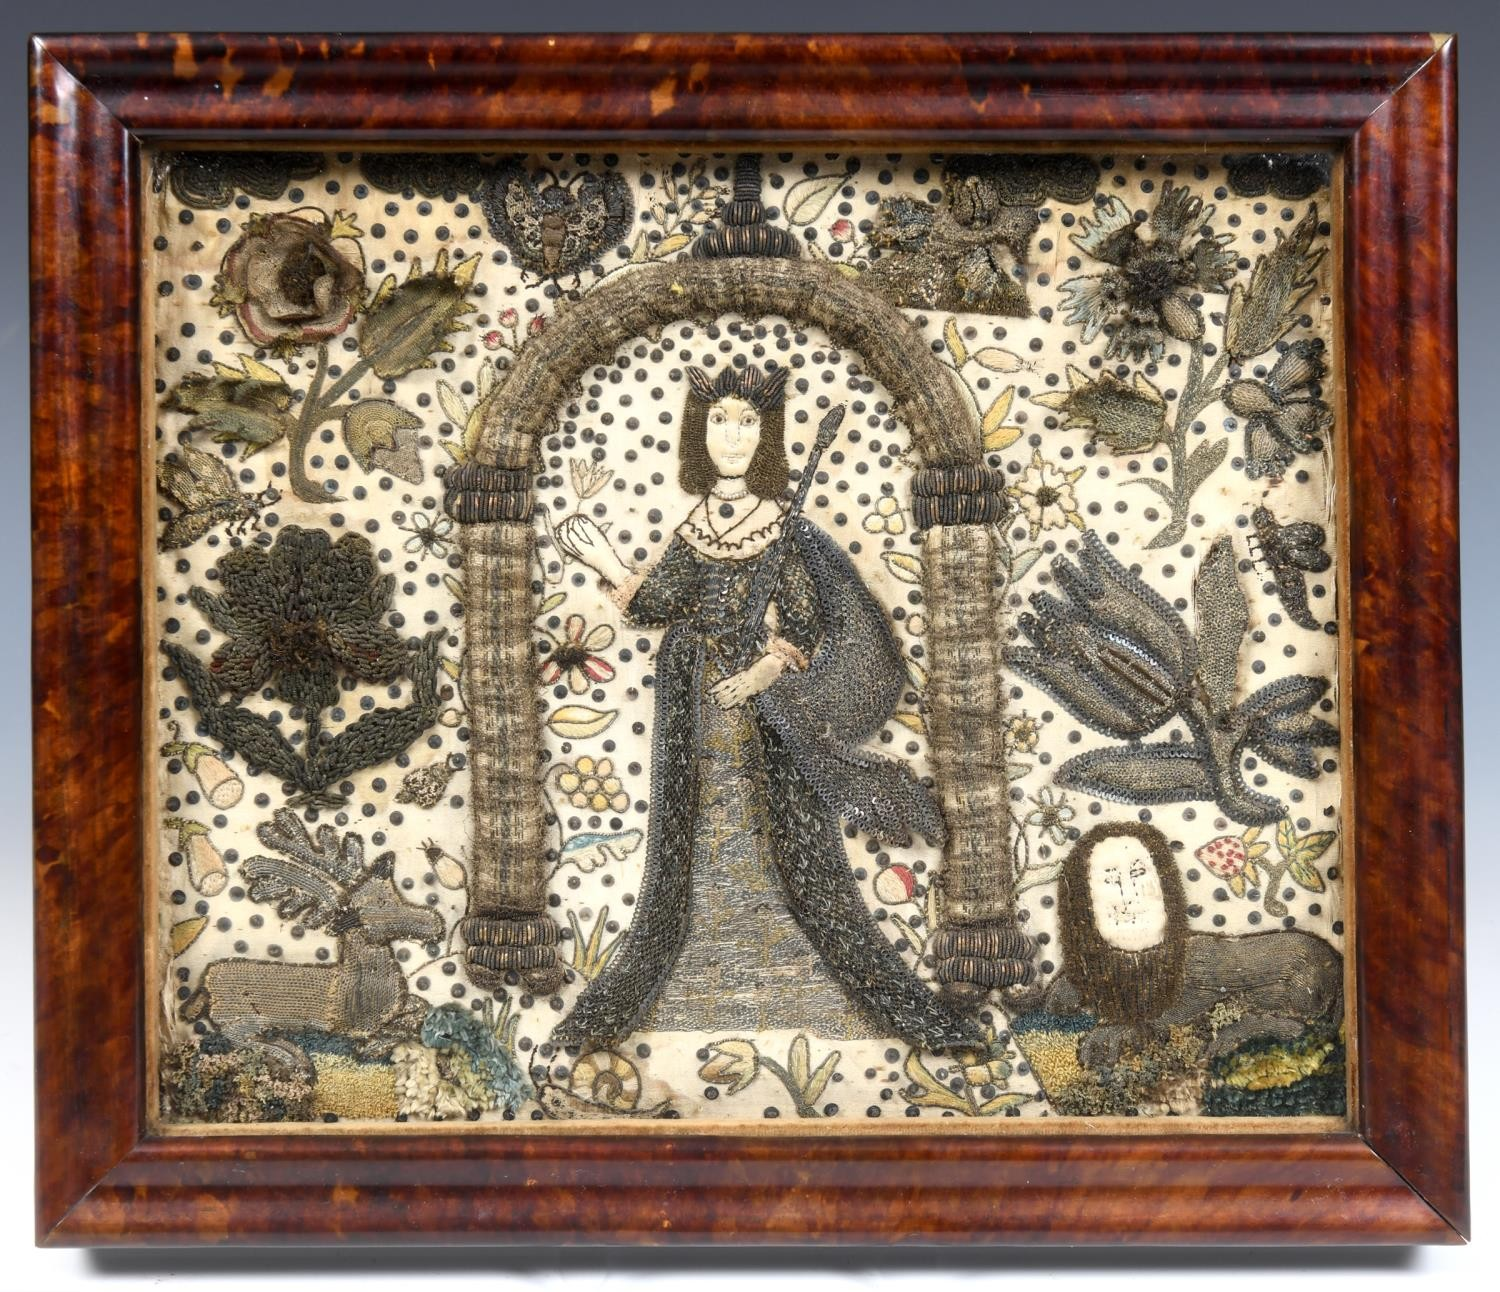 A raised work panel, decorated a princess in an archway surrounded by flowers, 24 x 30 cm, in a